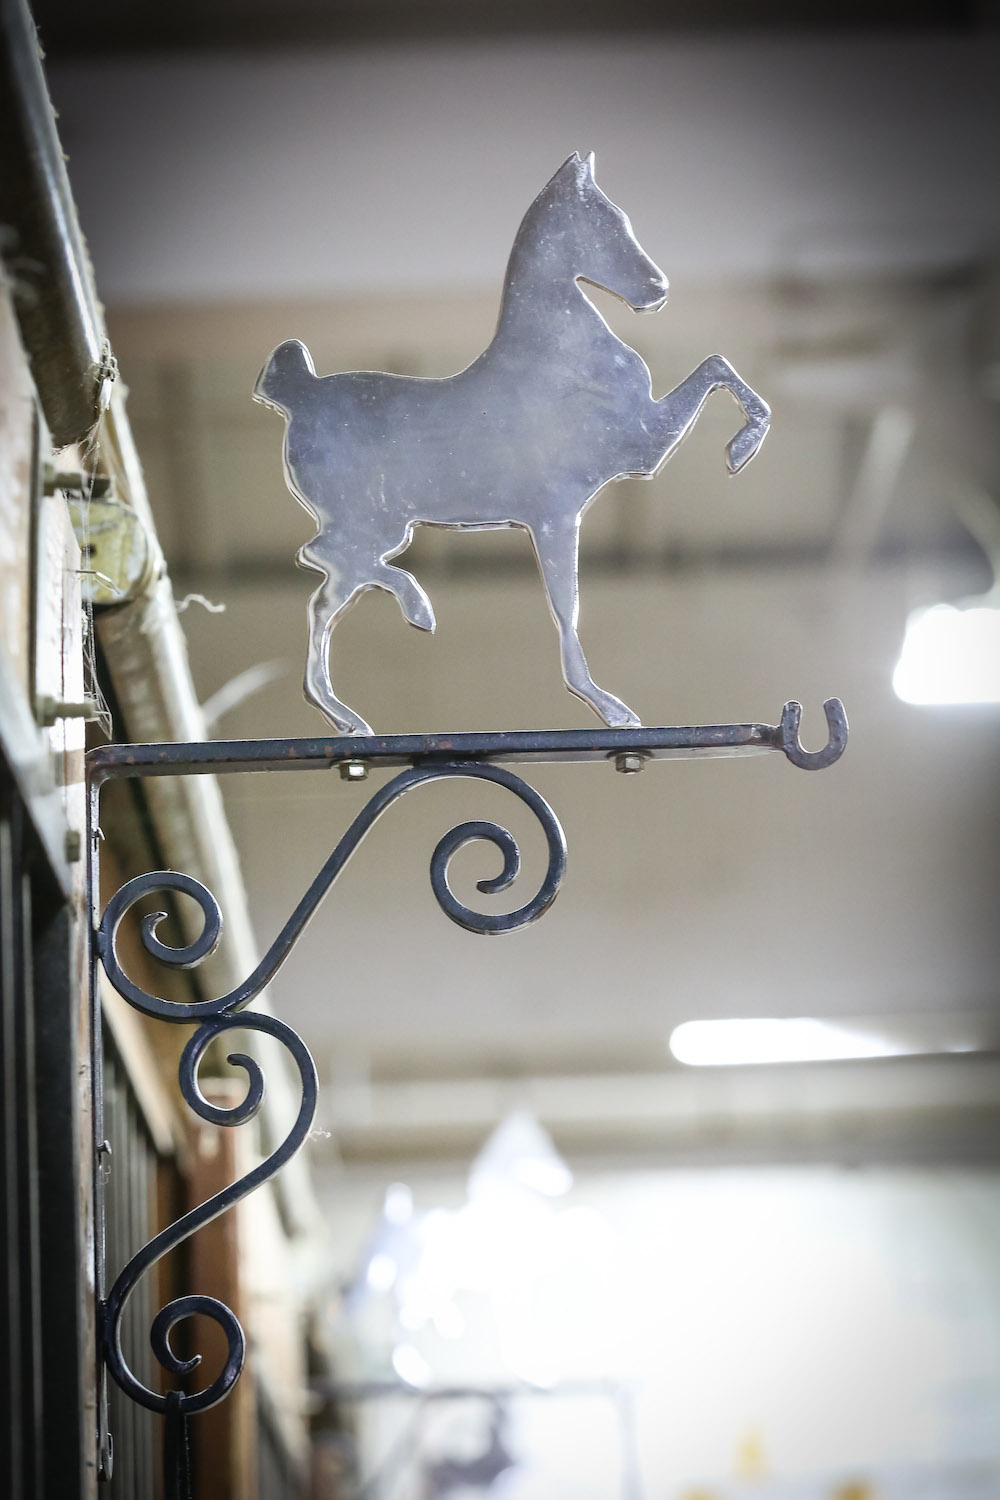 Barns can add a unique touch to their stabling areas with decorative pieces like this.